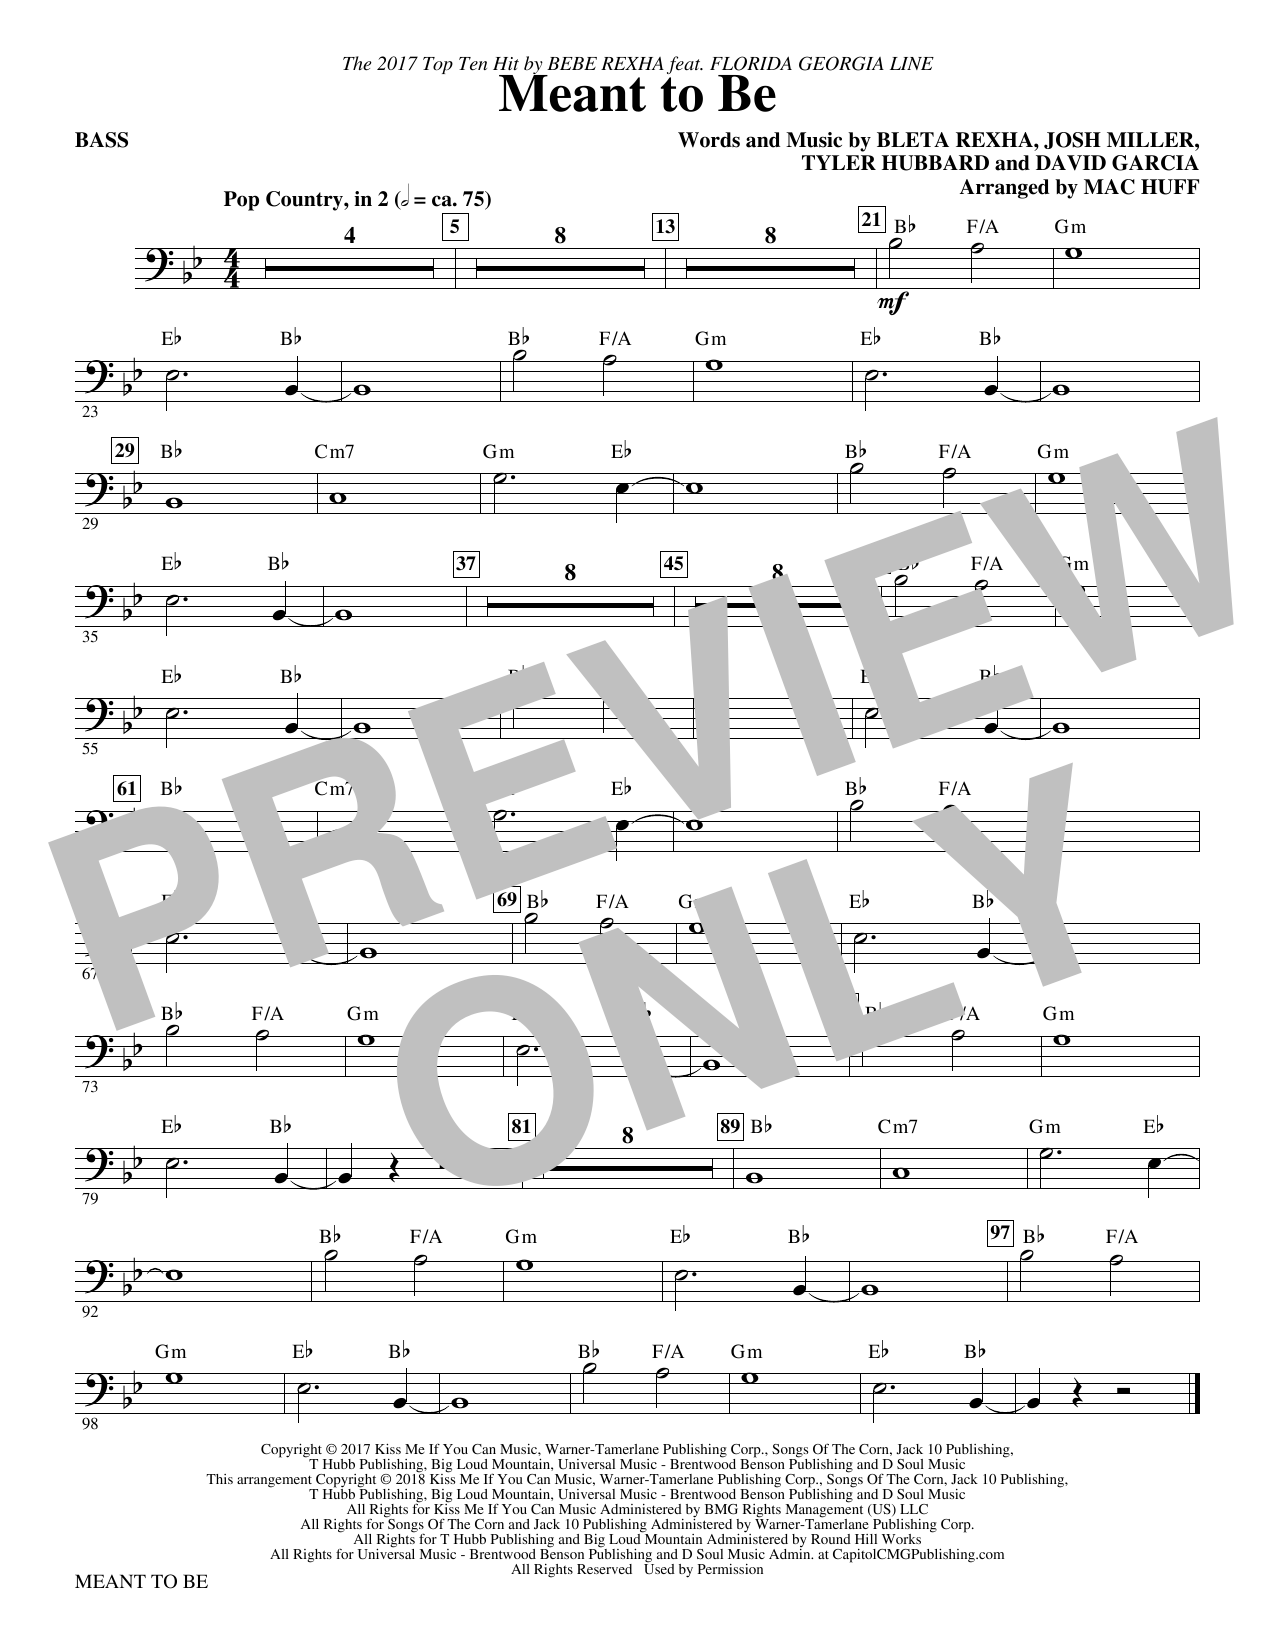 Bebe Rexha Meant to Be (Feat. Florida Georgia Line) (arr. Mac Huff) - Bass sheet music notes and chords. Download Printable PDF.